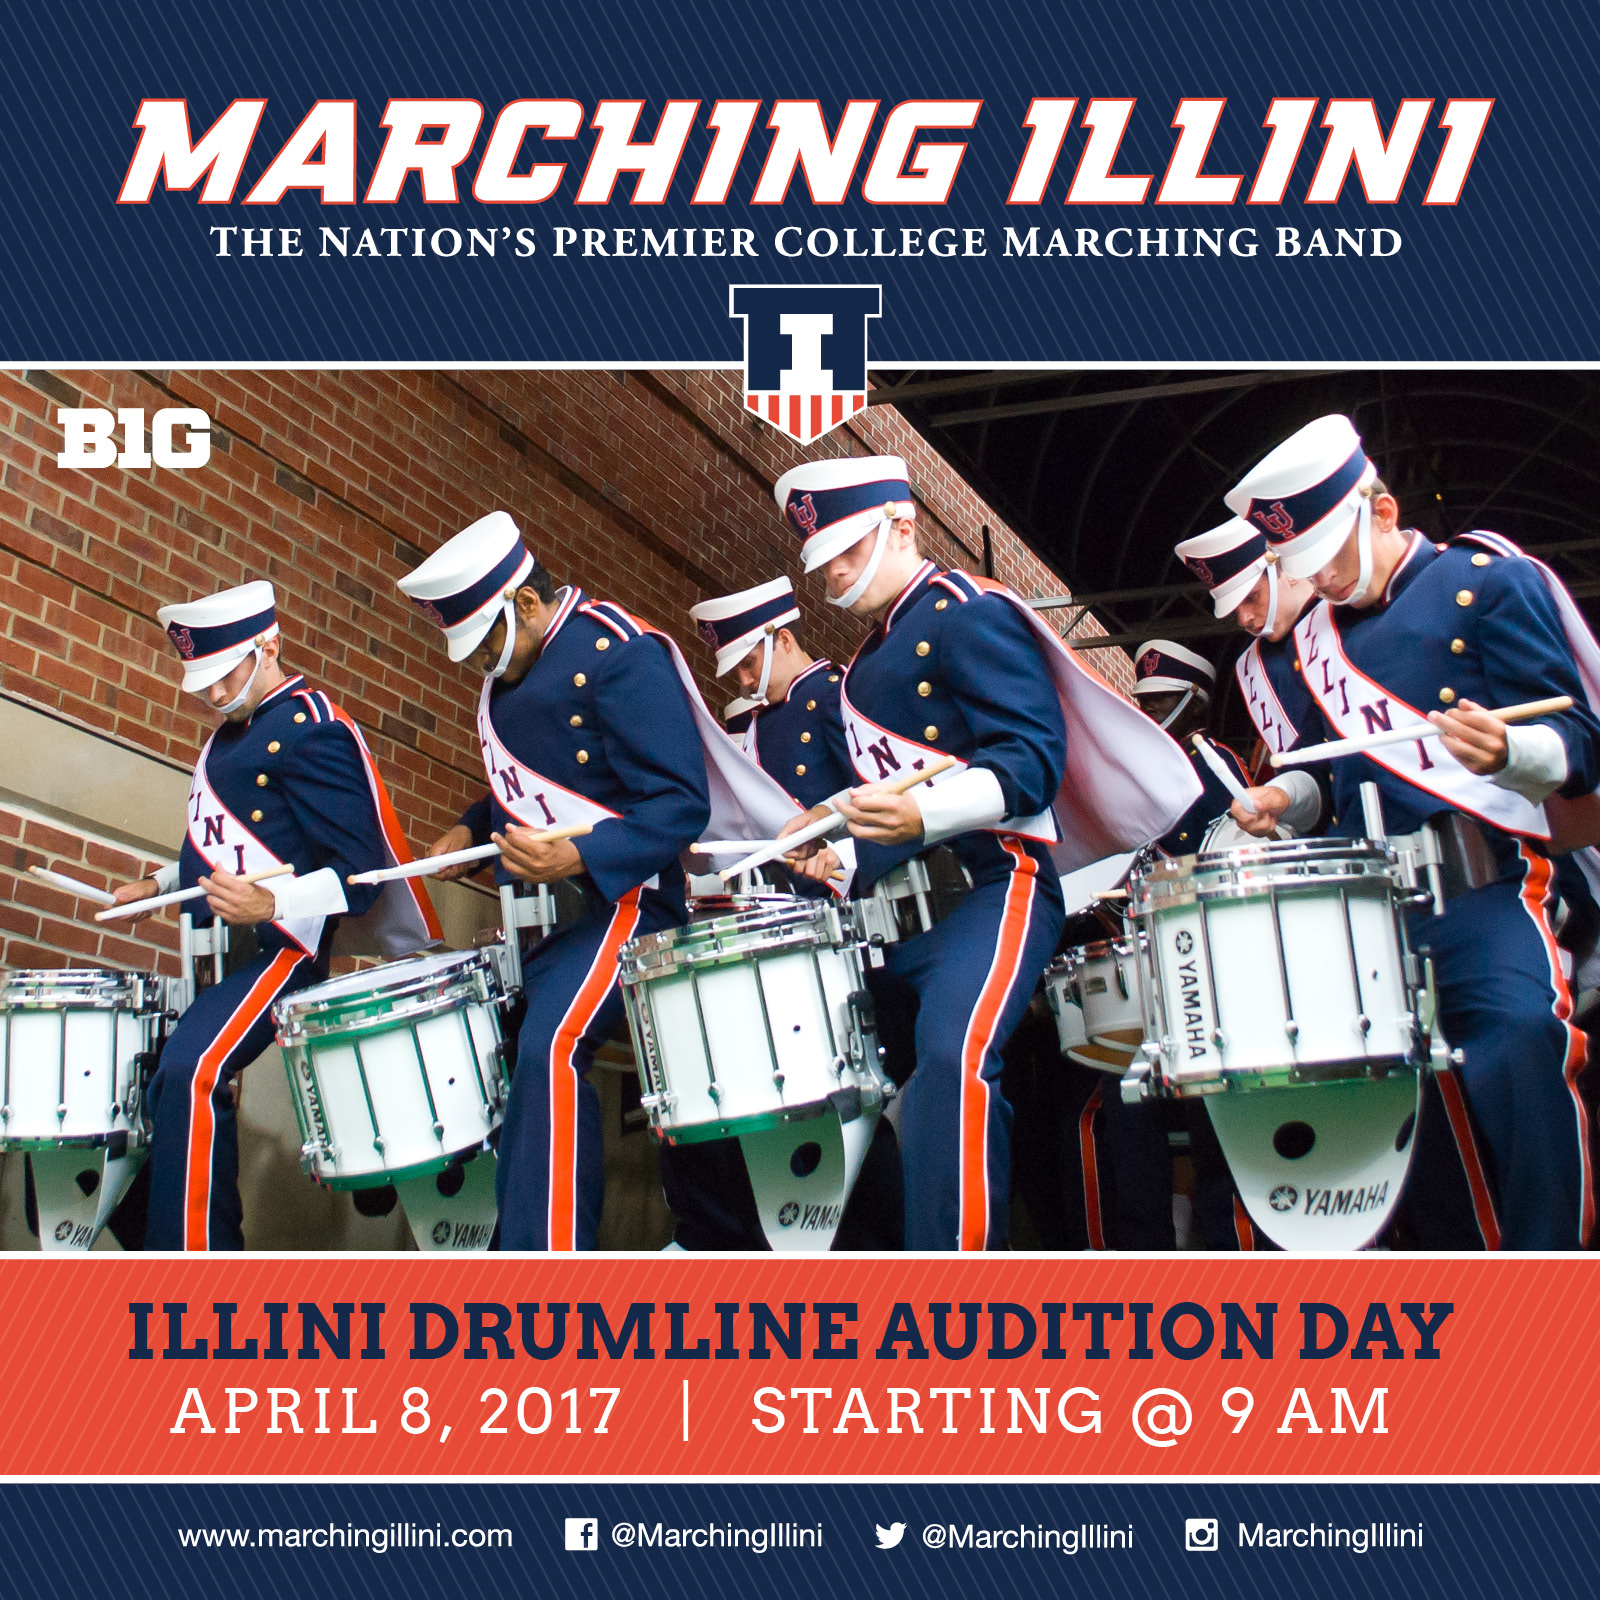 Drumline 2017 Audition Results Here